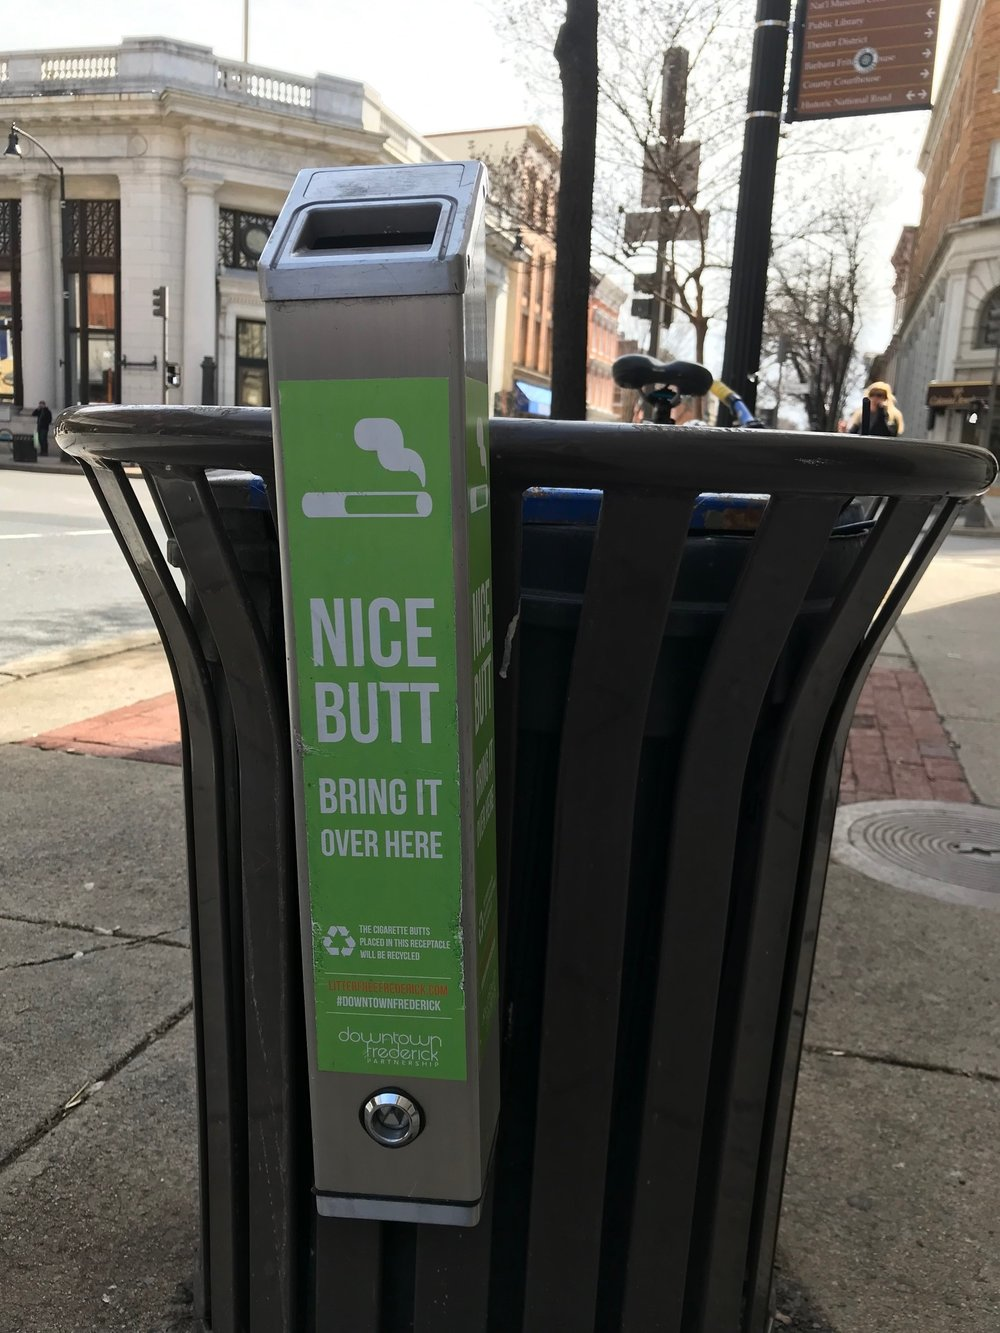 Partnerships between The City and Downtown Frederick Partnership make initiatives like the Terracycle cigarette butt recycling containers a reality.